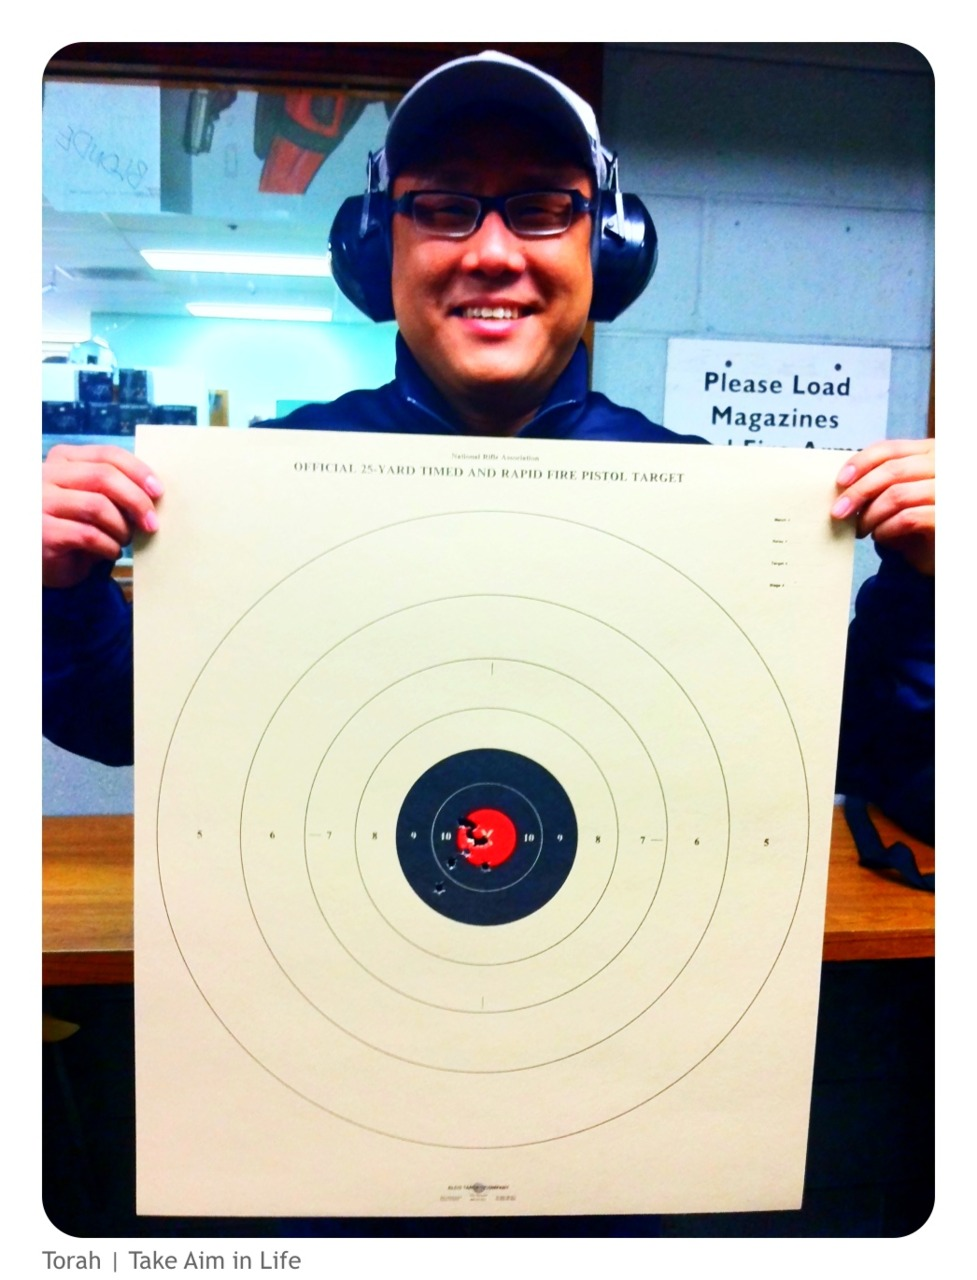 """Torah {Biblical Living}   """"To take aim, to shoot"""", to """"hit the mark"""".   Our ancient faith (OT) teaches us to take aim at all that God wants us to """"hit"""", in doing this we will experience deep satisfaction.   In Jesus we find that the bulls-eye is """"Love"""".   Let us take aim in life.     """"Love is the loaded gun, Let me point it at everyone"""" - Violet Burning      (Special thanks to Officer Choe for showing us the ropes.)"""